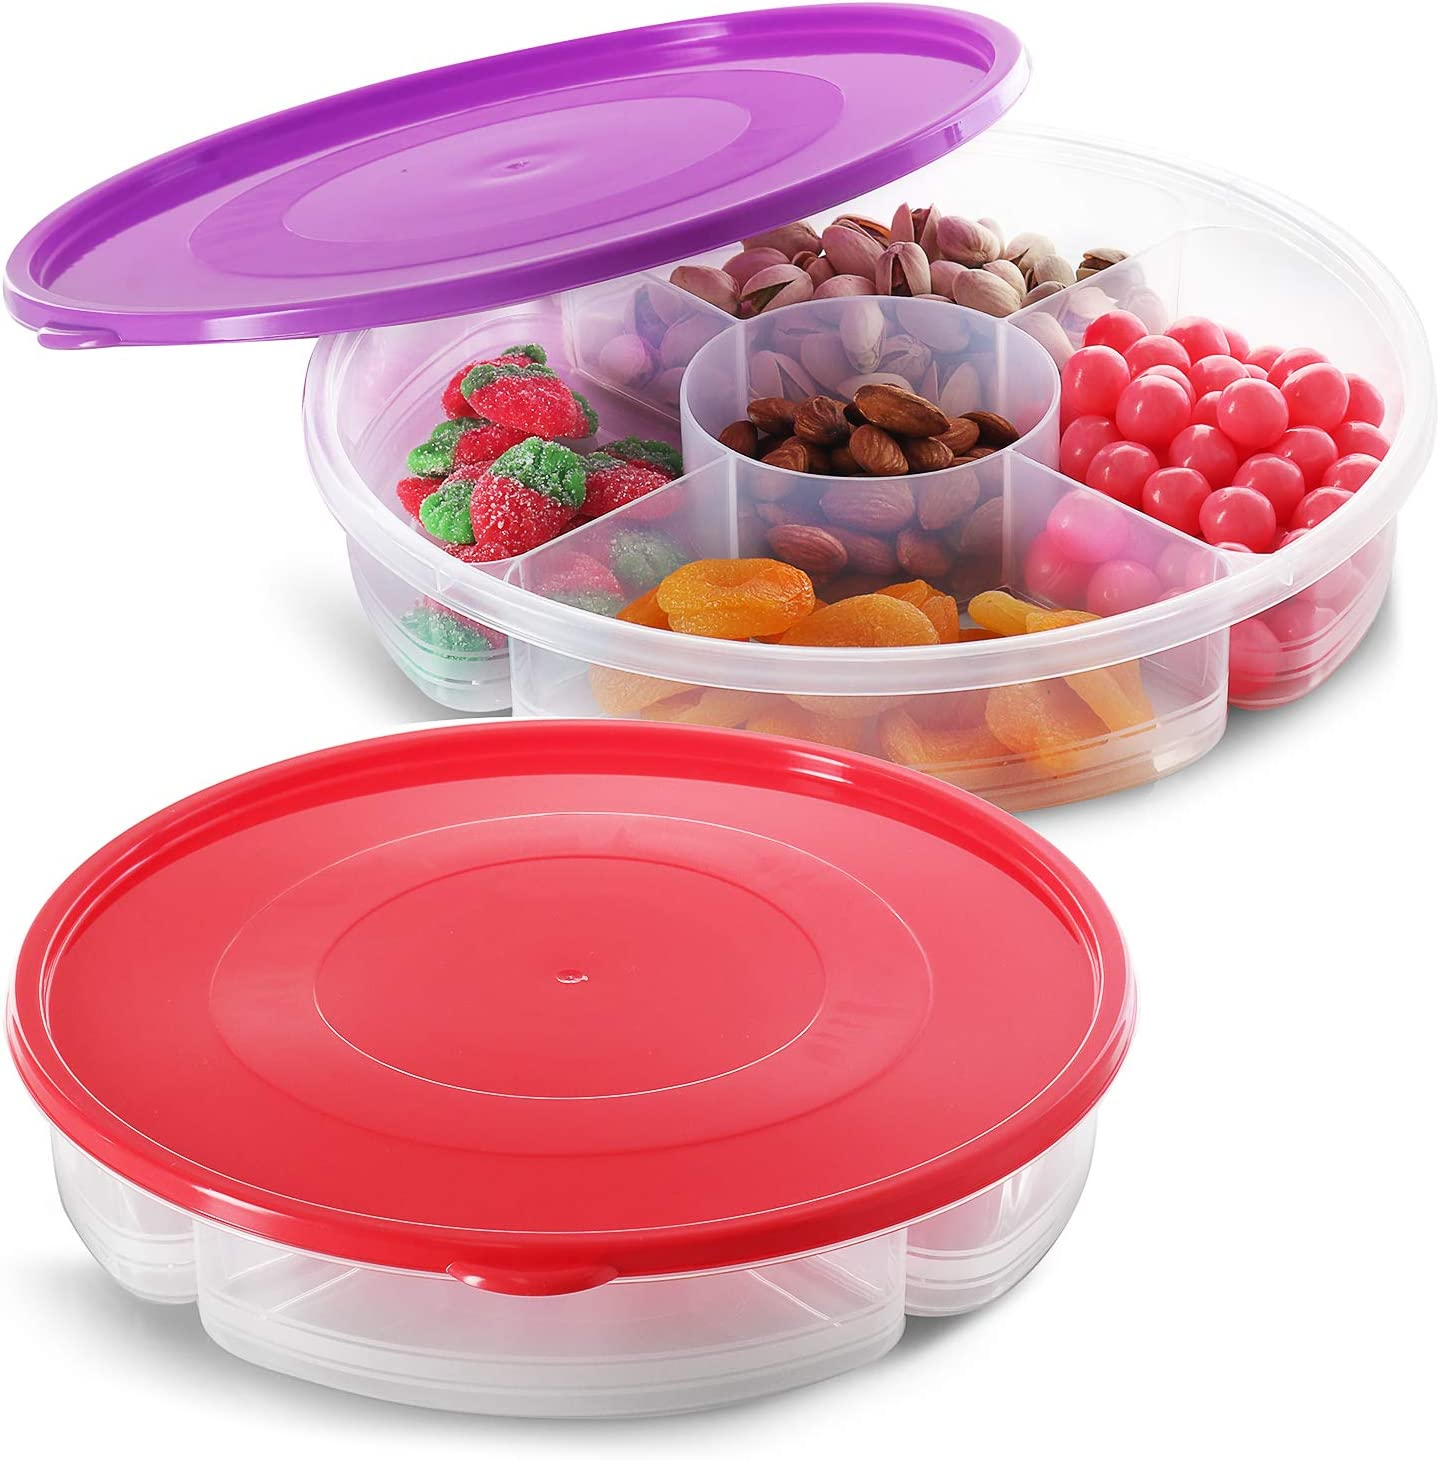 Zilpoo 2 Pack - Candy and Nut Serving Container, 5 Compartment Appetizer Tray with Lid, Round Plastic Food Storage Lunch Organizer, Divided Keto Snack Plate, Dish Platter w/Cover, 11-Inch